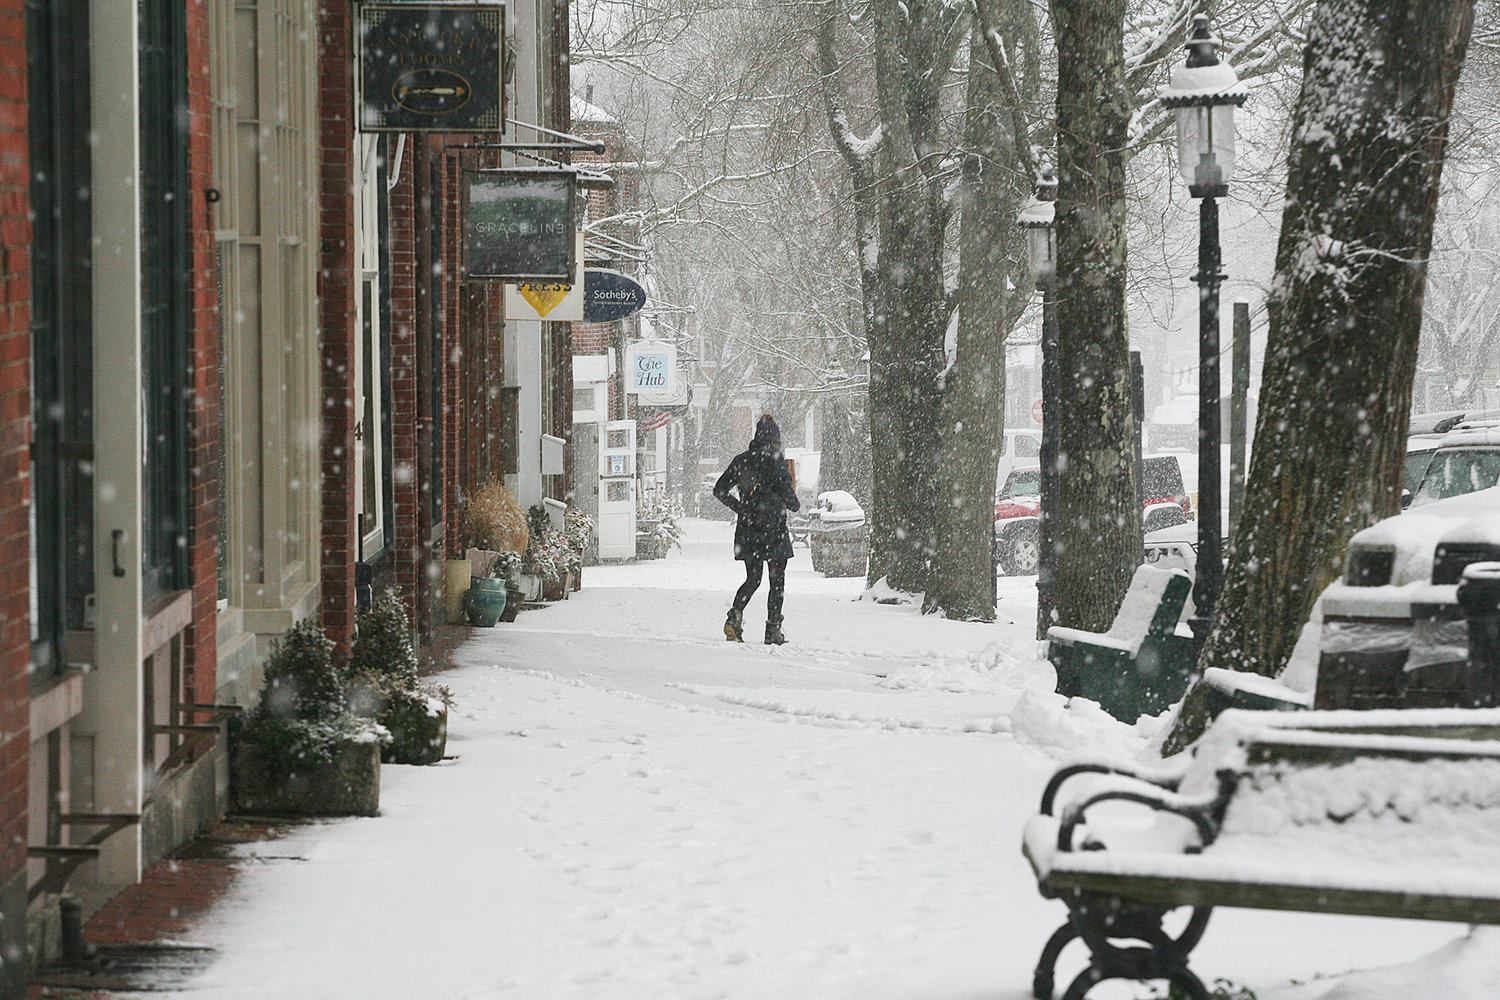 A pedestrian on Main Street during Thursday's snow.